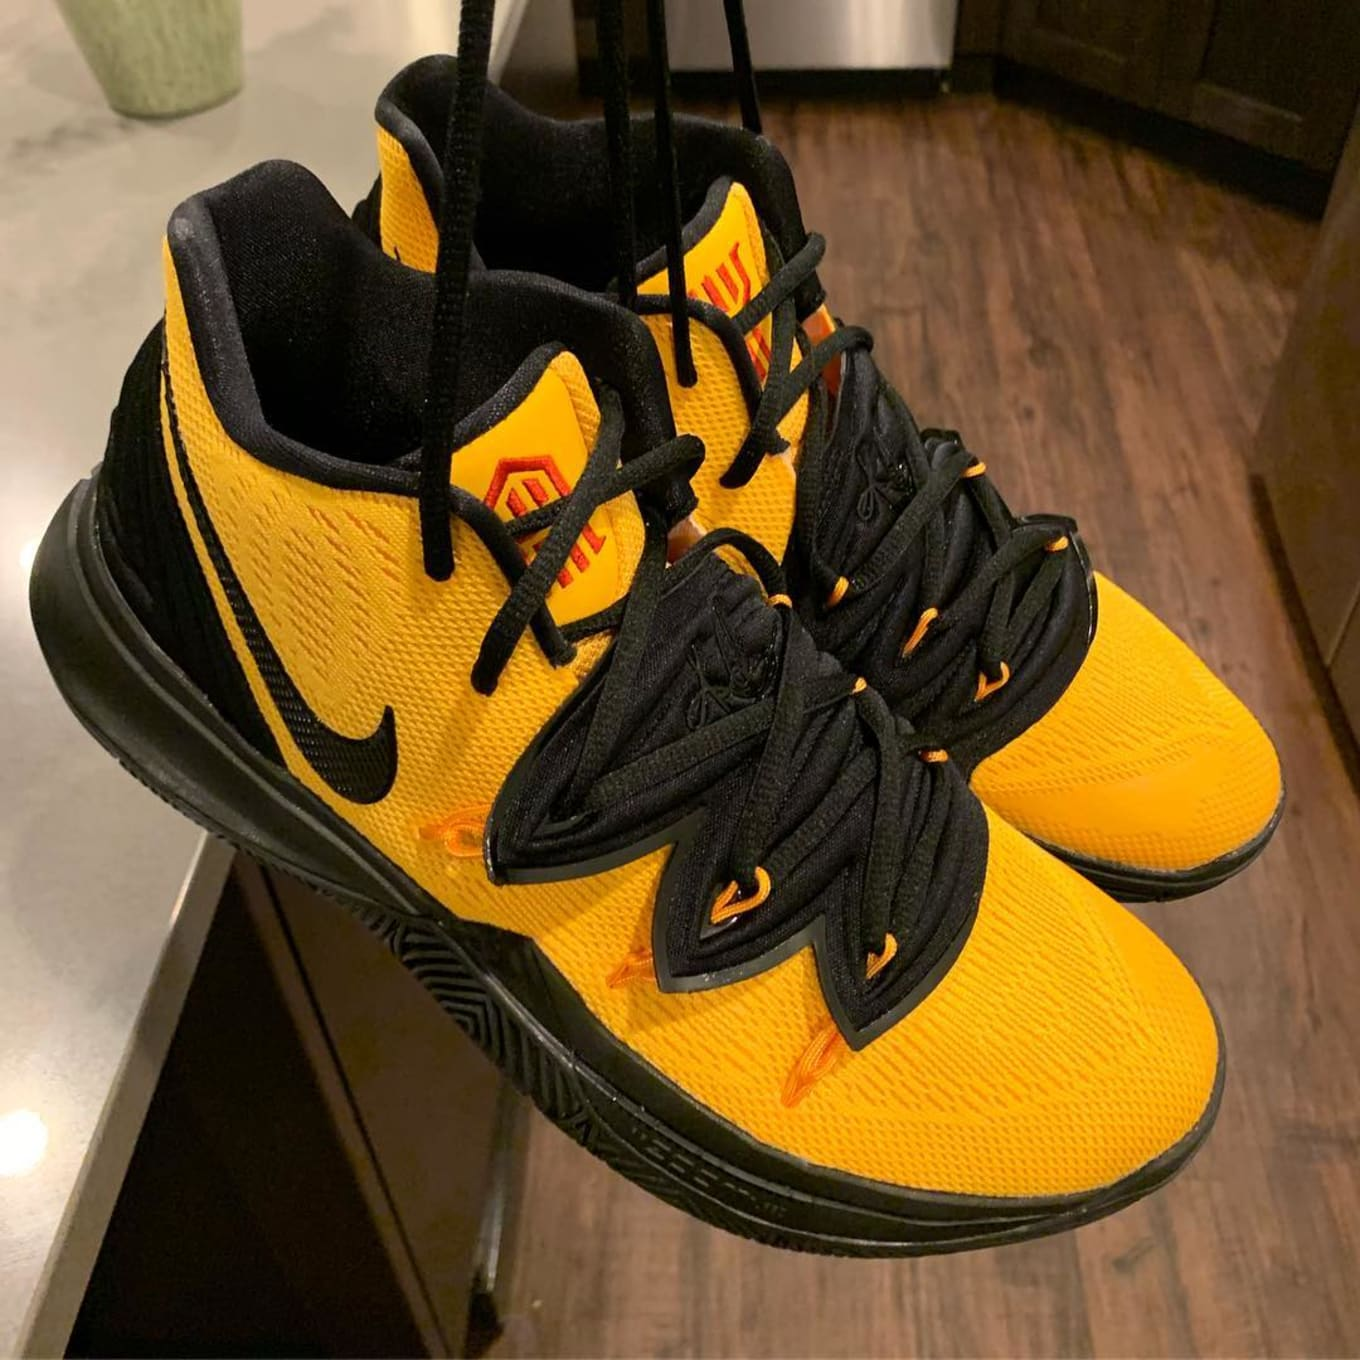 best website eab51 4c8a7 NIKEiD By You Kyrie 5 Designs | Sole Collector